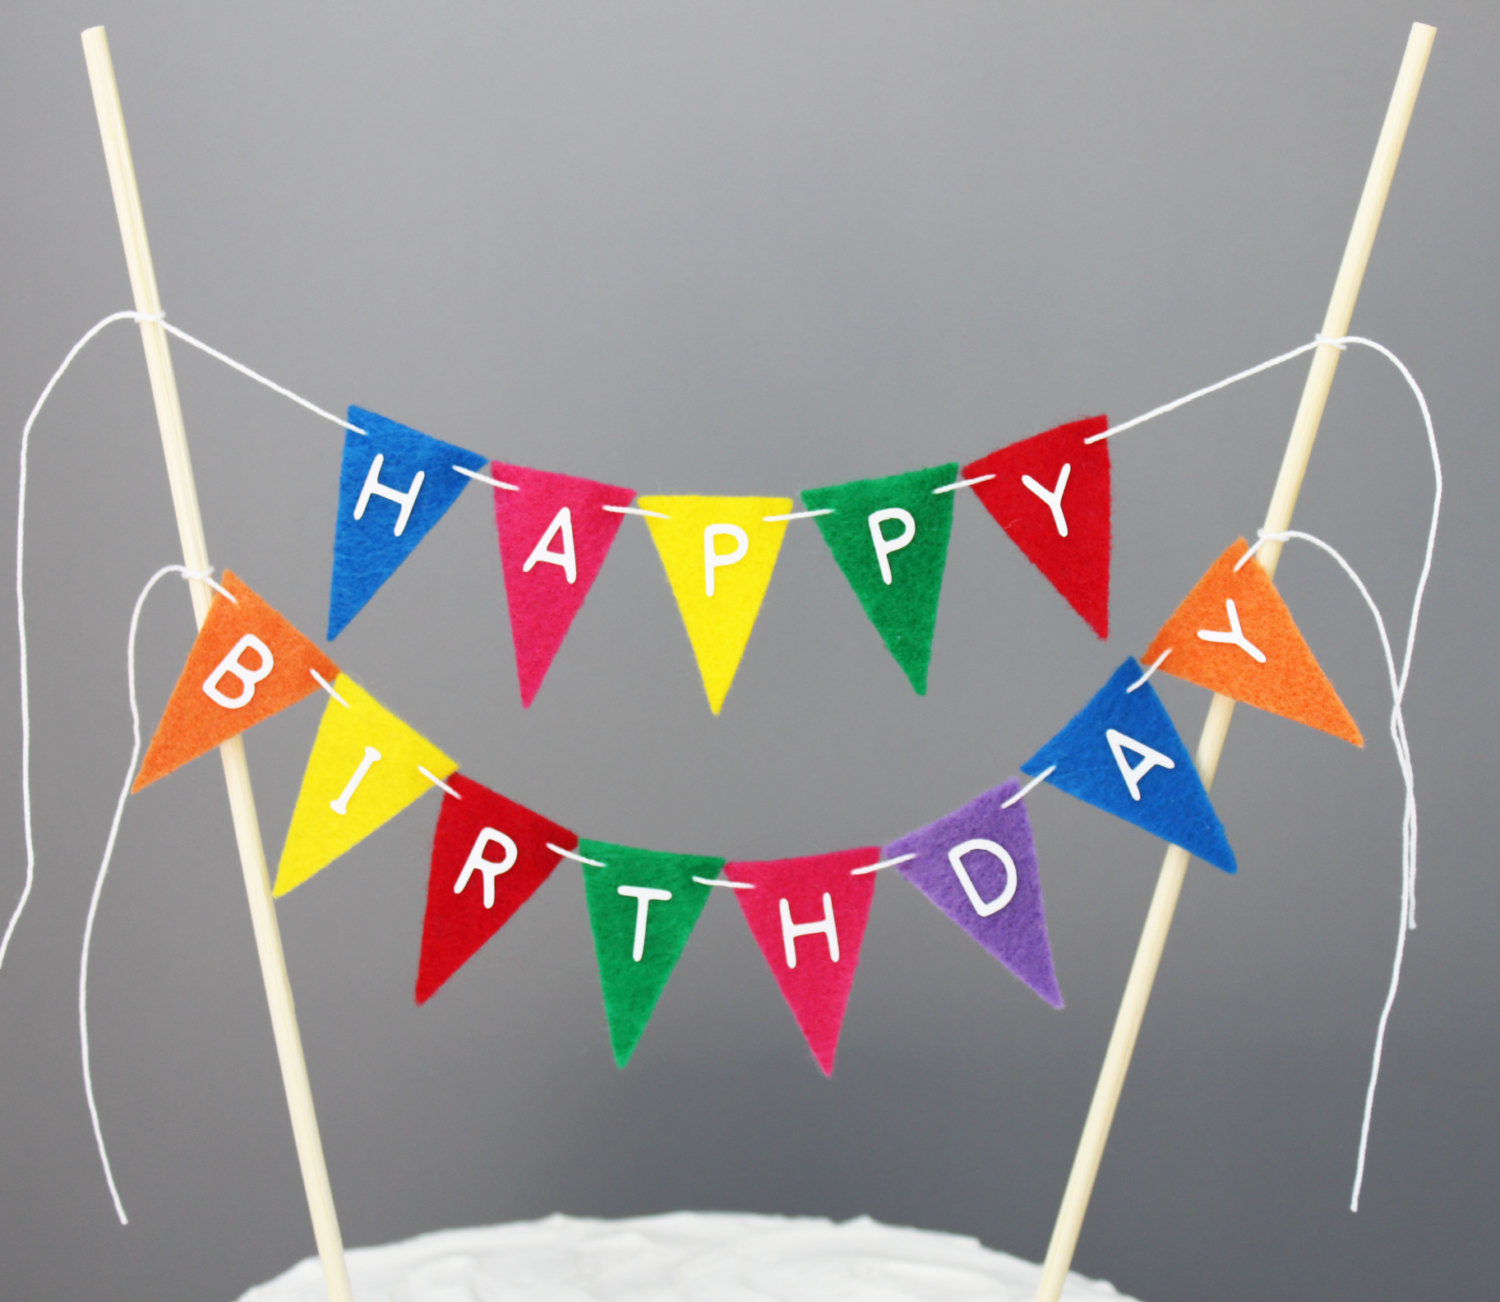 happy birthday sign cake toppers ; birthday-cake-banner-round-white-creamy-cake-with-colorfull-flannel-banner-decoration-unique-banner-cake-topper-related-items-etsy